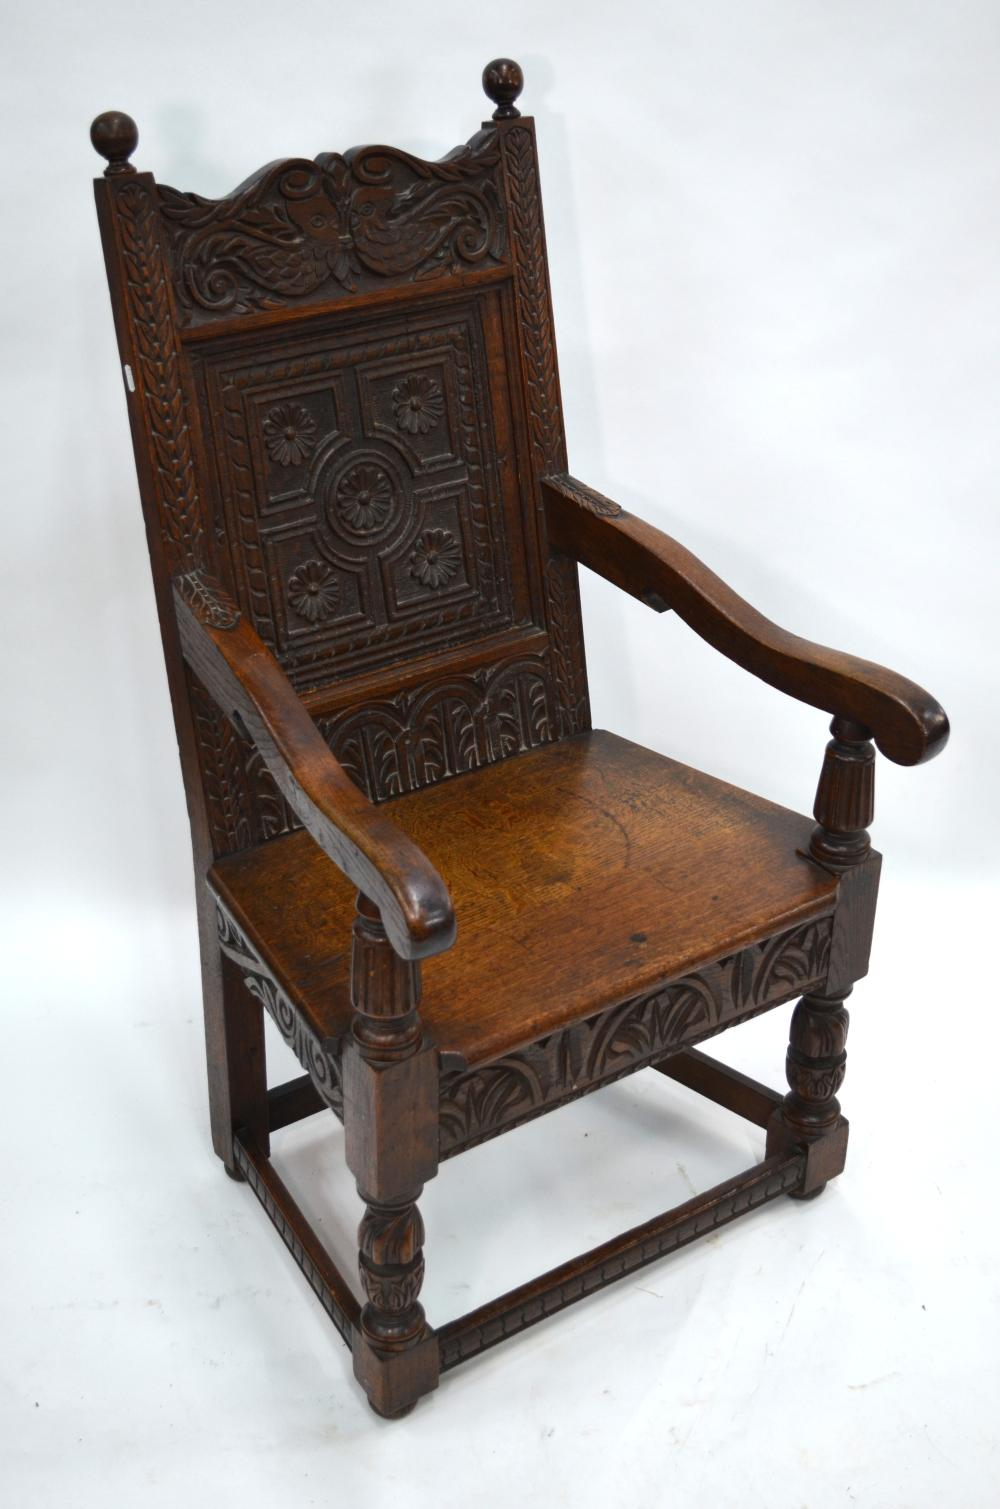 A Victorian oak Wainscote chair in the 17th century style